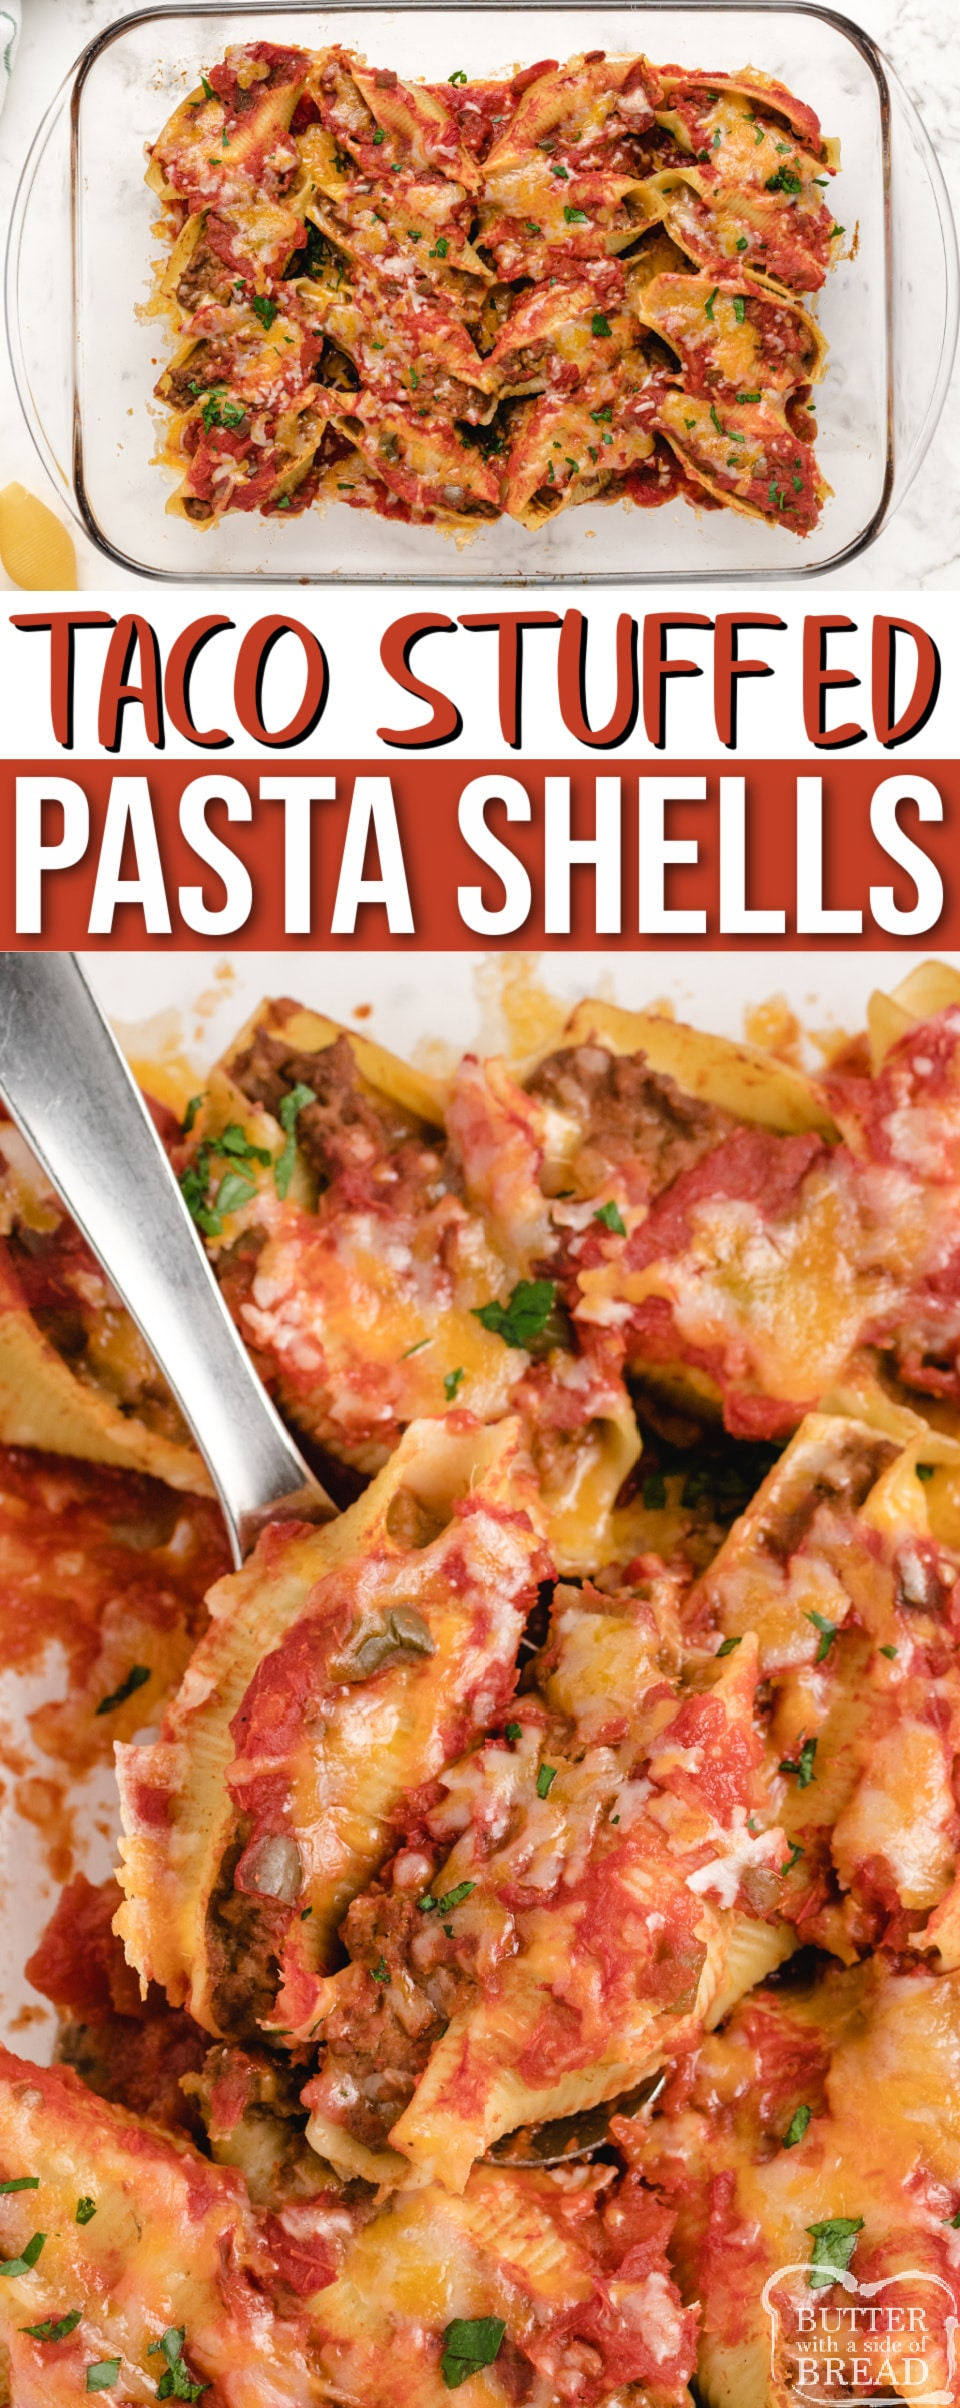 Taco Stuffed Pasta Shells made with a few simple ingredients for an easy dinner recipe that the whole family will love. Easy Mexican recipe made with pasta shells that are stuffed with seasoned ground beef and beans and topped with cheese and salsa.